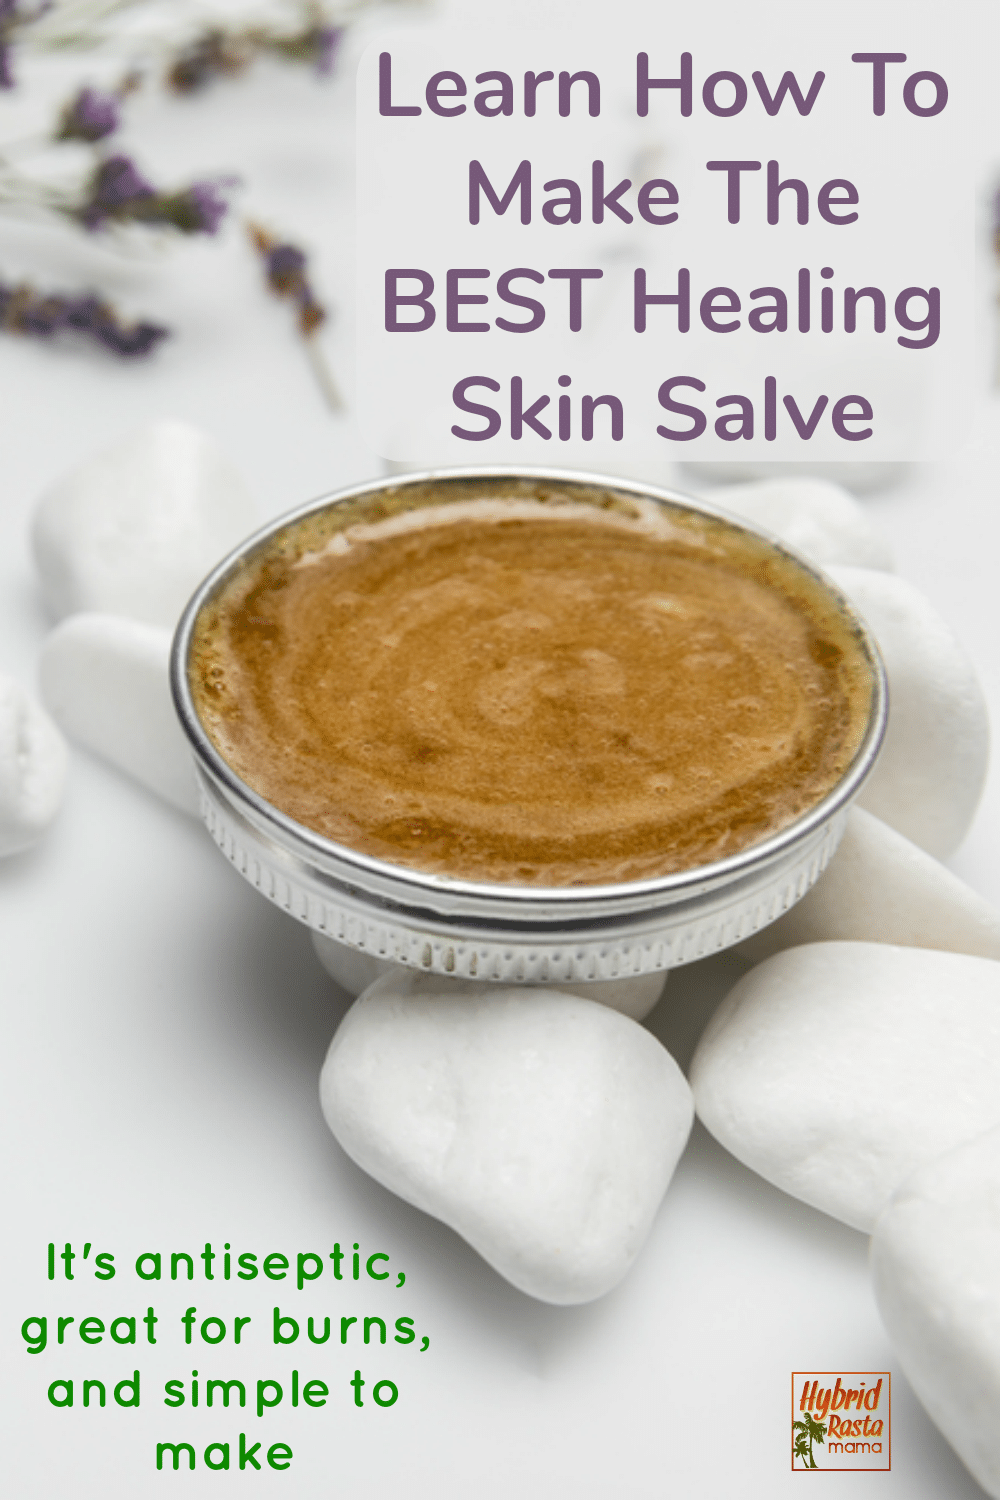 A metal container of the best healing skin salve with lavender in the background